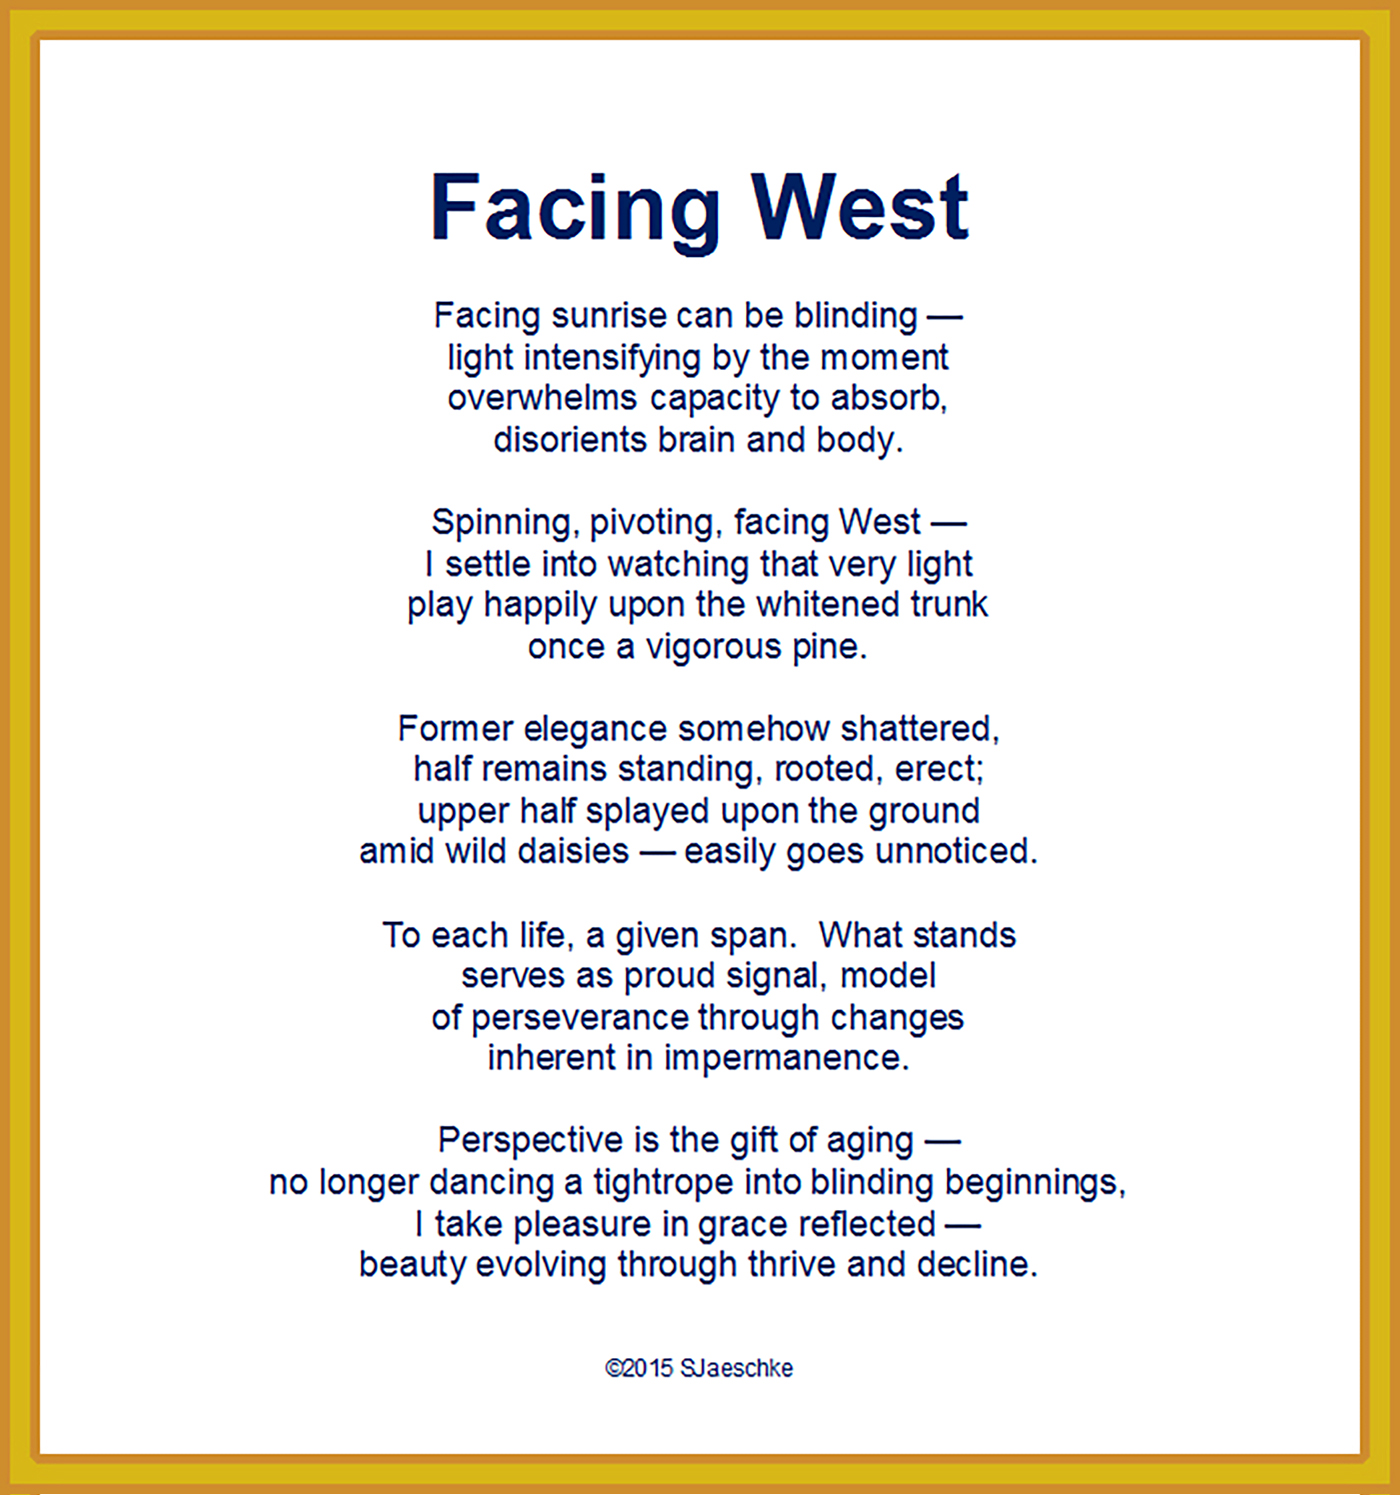 Post_2015-08-17_Poem_FacingWest